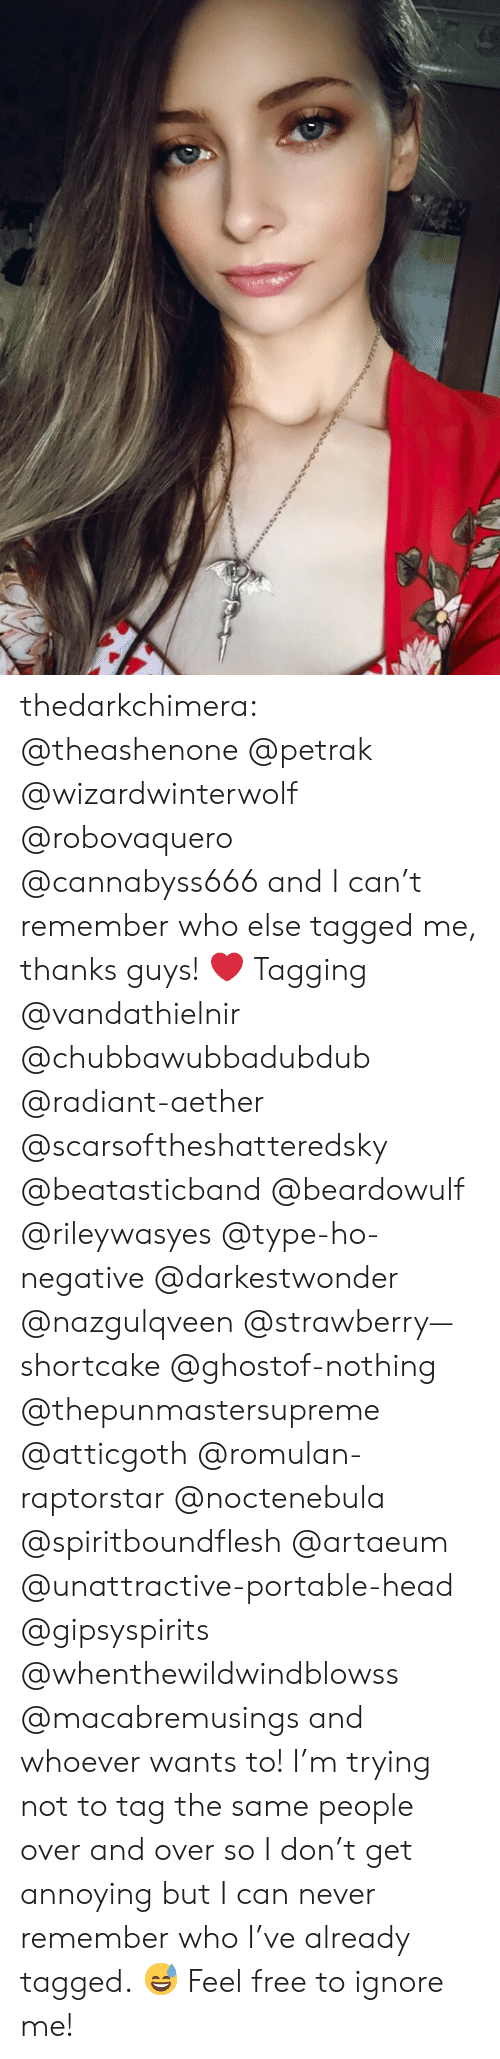 Head, Tumblr, and Blog: thedarkchimera: @theashenone @petrak @wizardwinterwolf @robovaquero @cannabyss666 and I can't remember who else tagged me, thanks guys! ❤️  Tagging @vandathielnir @chubbawubbadubdub @radiant-aether @scarsoftheshatteredsky @beatasticband @beardowulf @rileywasyes @type-ho-negative @darkestwonder @nazgulqveen @strawberry—shortcake @ghostof-nothing @thepunmastersupreme @atticgoth @romulan-raptorstar @noctenebula @spiritboundflesh @artaeum @unattractive-portable-head @gipsyspirits @whenthewildwindblowss @macabremusings and whoever wants to! I'm trying not to tag the same people over and over so I don't get annoying but I can never remember who I've already tagged. 😅 Feel free to ignore me!